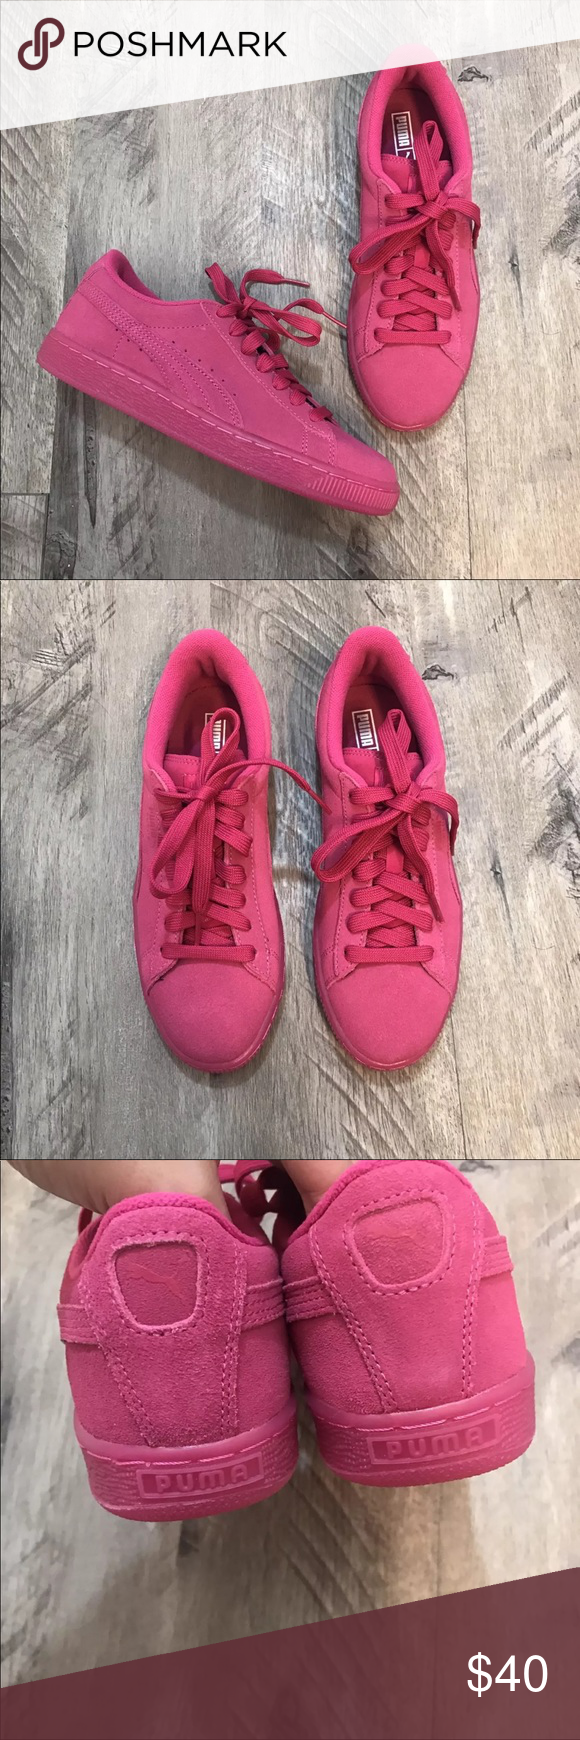 size 40 757df 26e68 New Pink Puma Sneaker Shoes Brand new! Puma pink suede ...